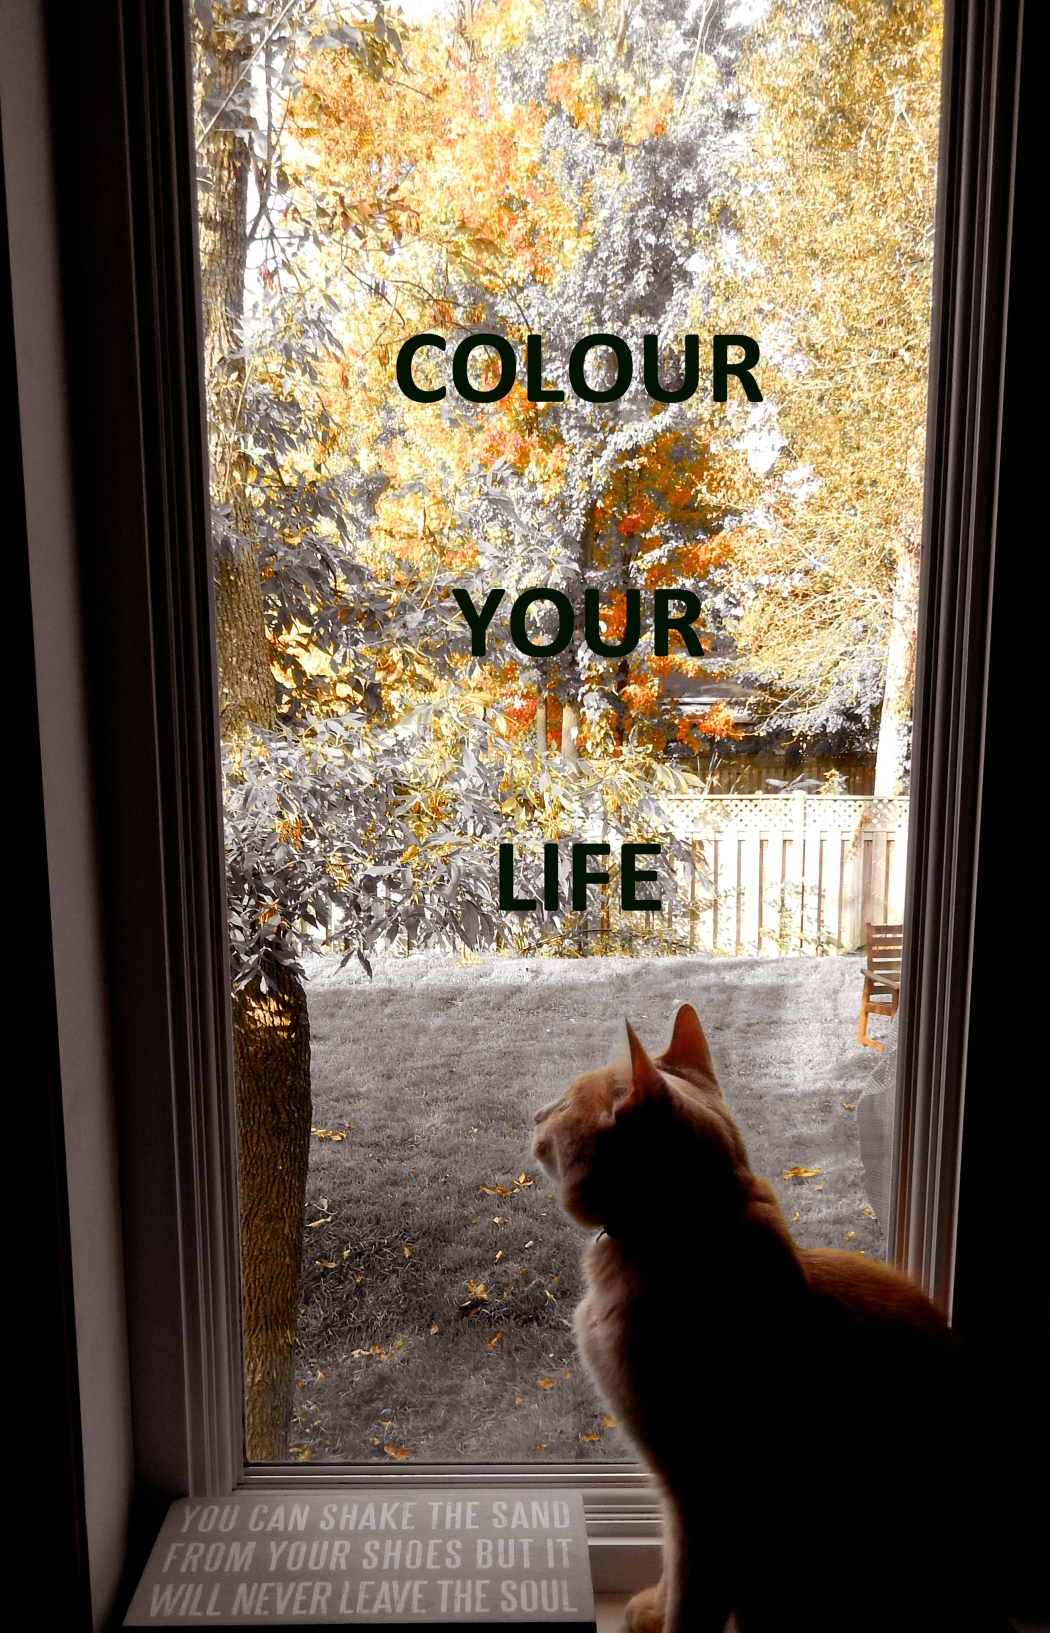 Colour Your Life!